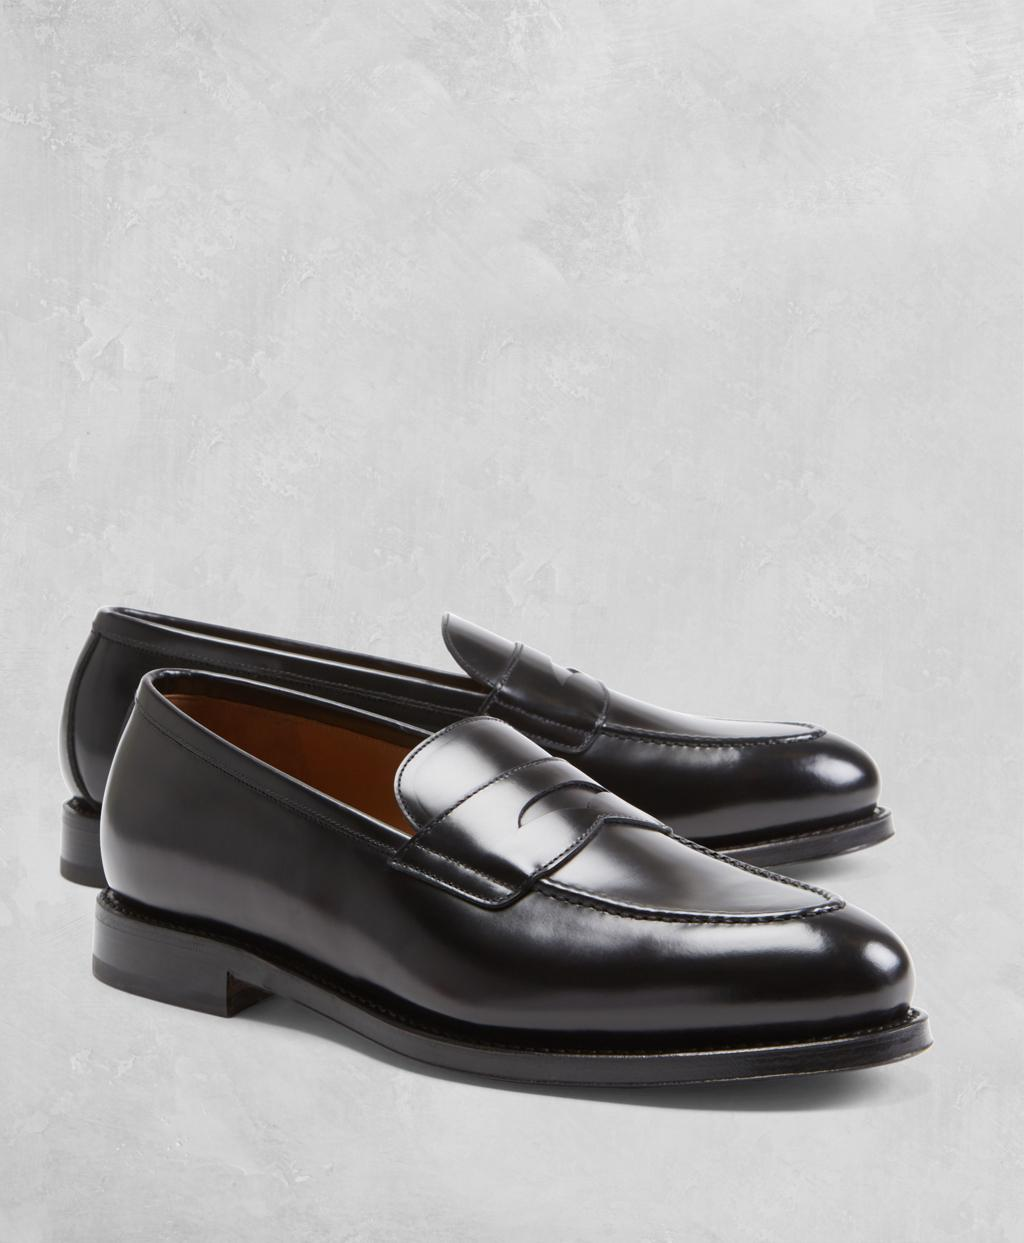 322dcffd6fd Brooks Brothers Golden Fleece® Penny Loafers in Black for Men - Lyst